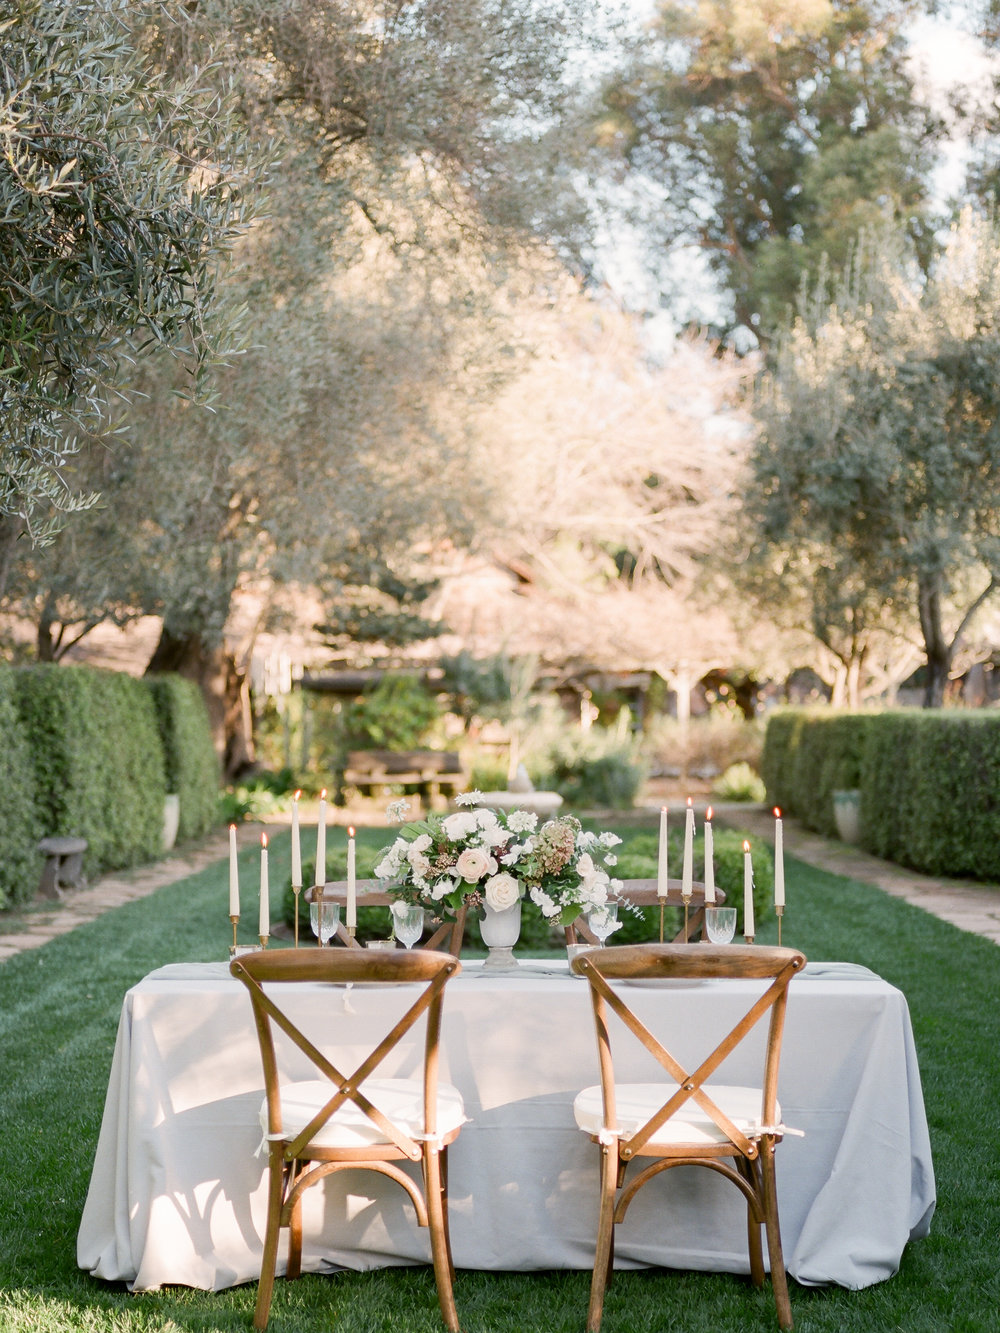 Secret Garden Wedding Inspiration with Golden Light Design & styling by Natalie Choi Events. Photography by Kate Anfinson. Florals by Bloomwell & Co.